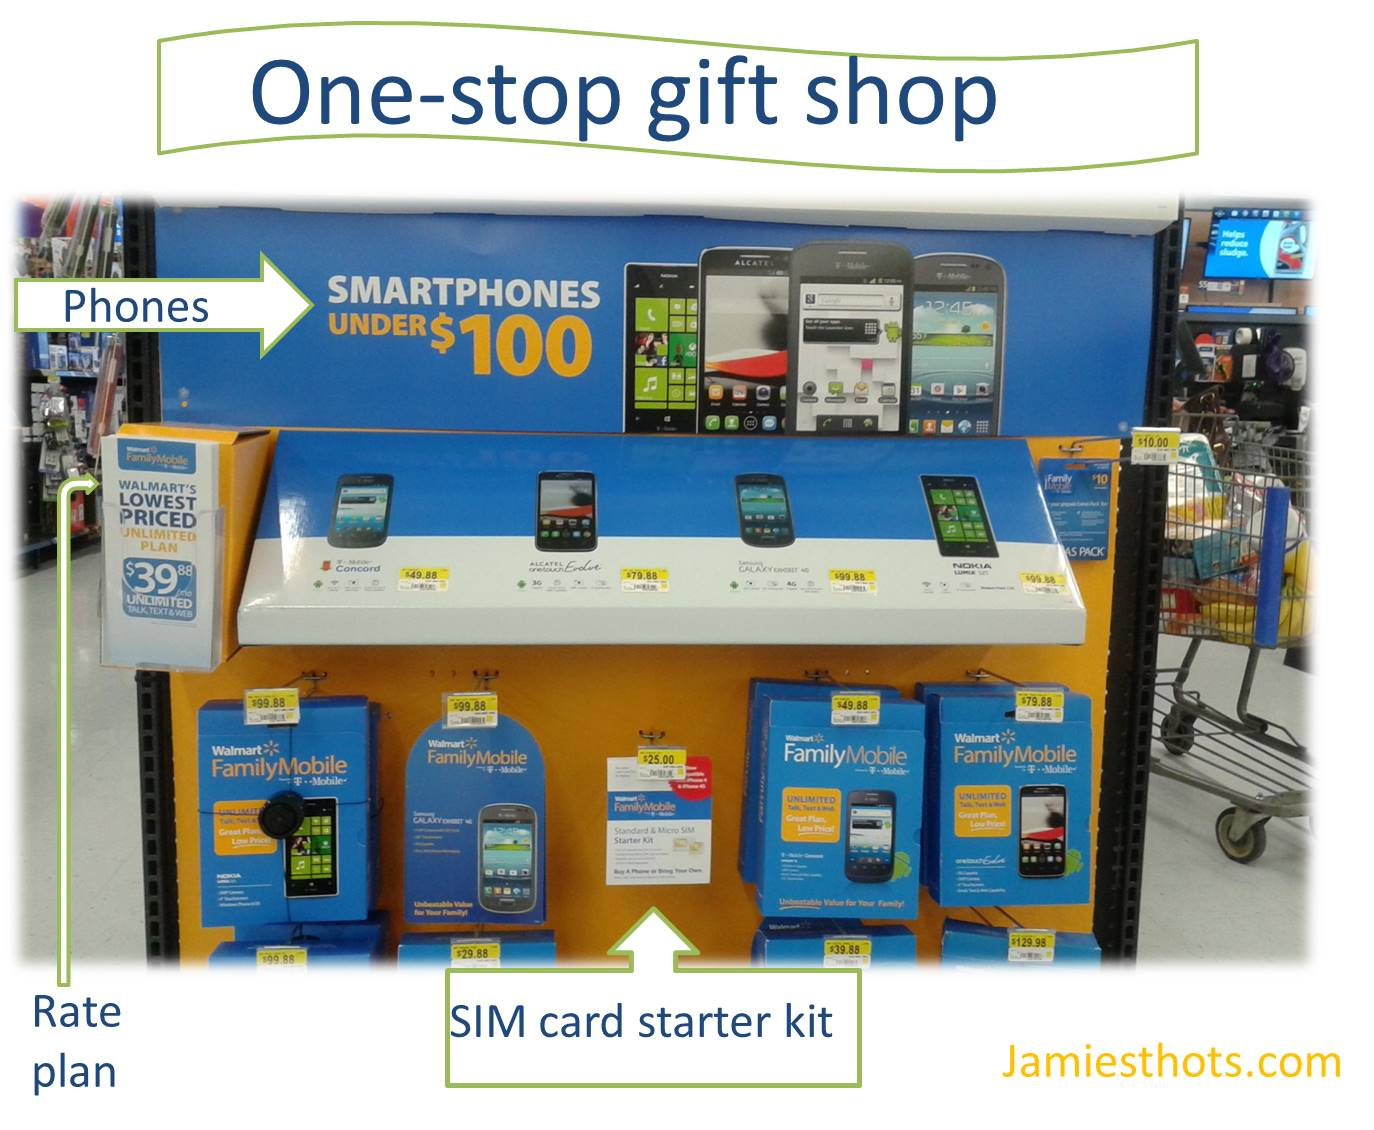 Looking for a great gift? Check out my experience with Walmart's Lowest Priced Unlimited Plans for inspiration